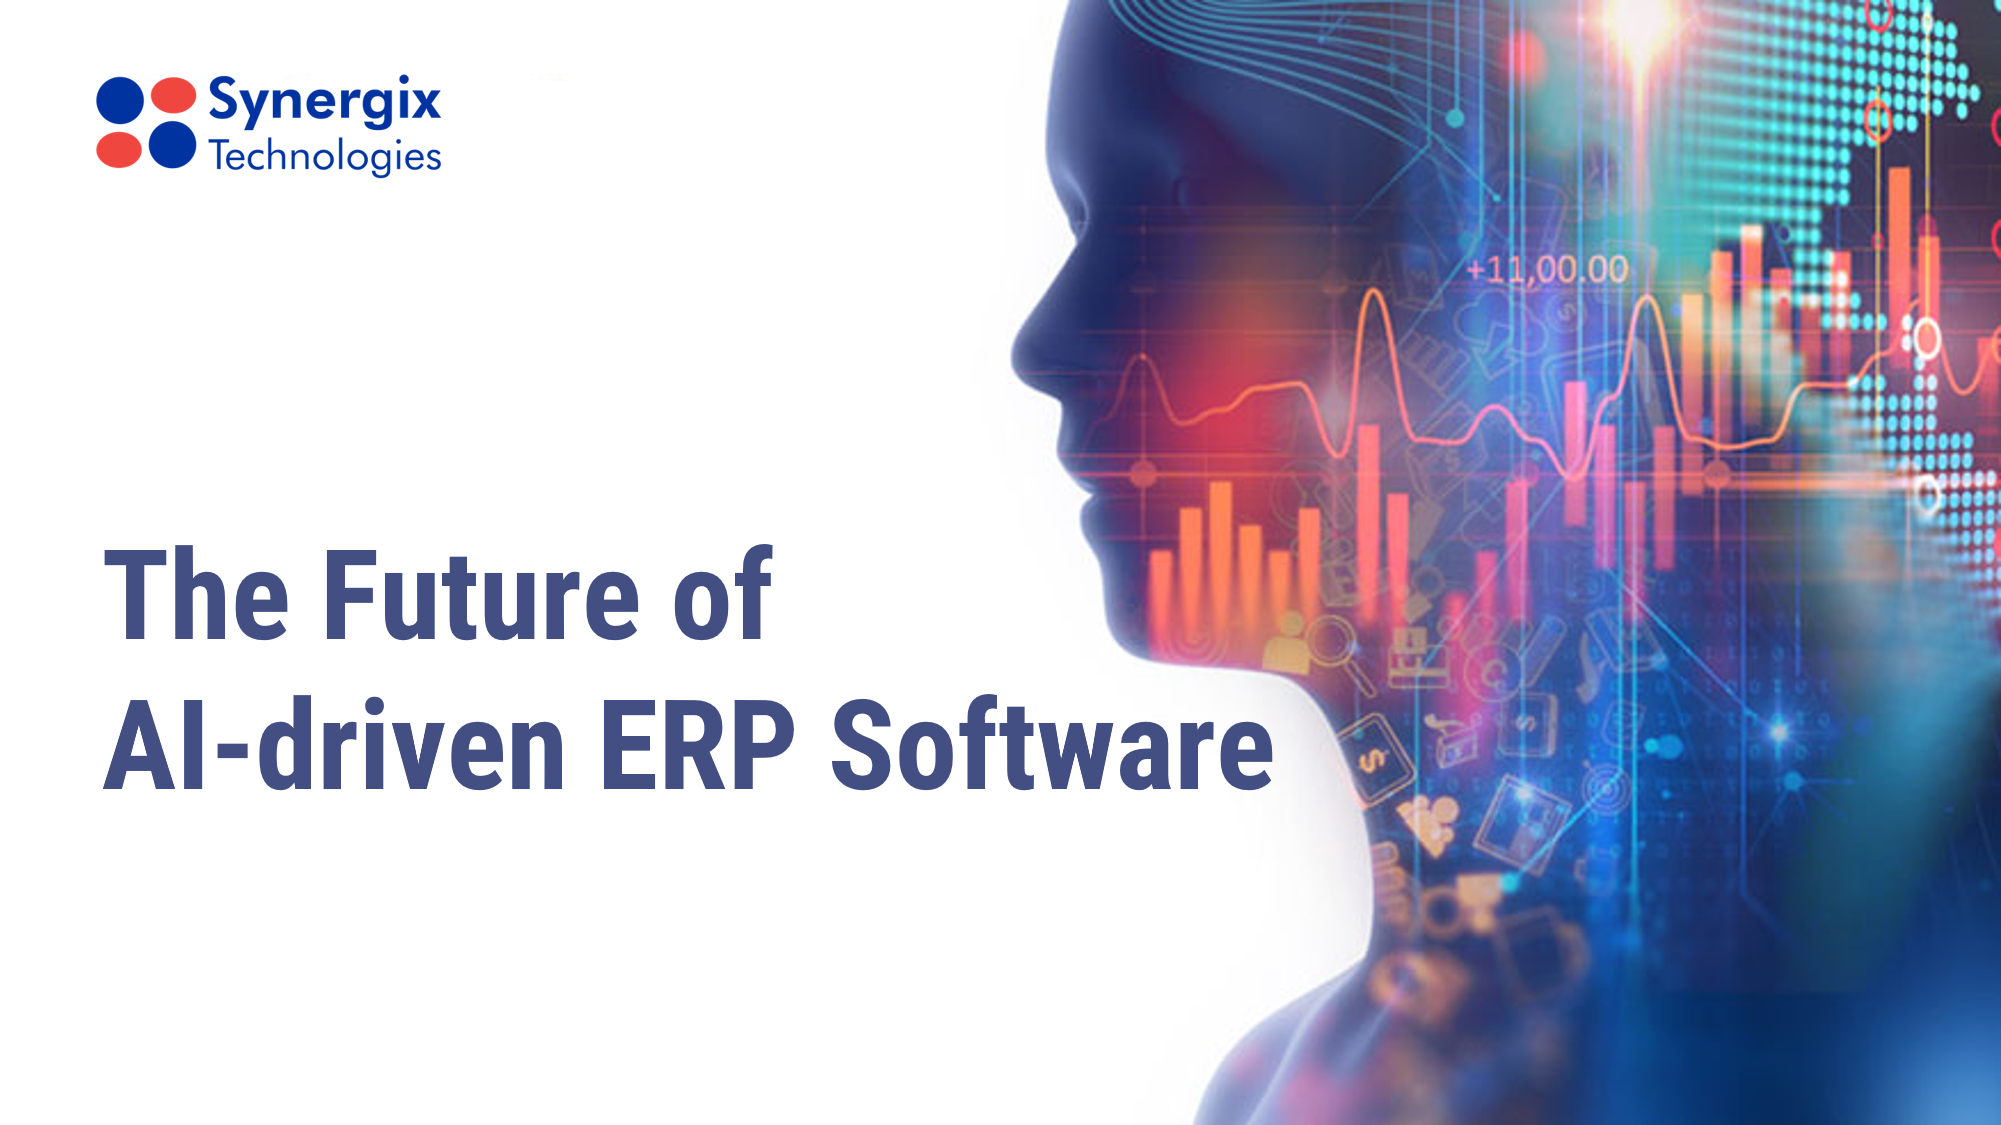 The future of AI - The Future of AI-driven ERP Software